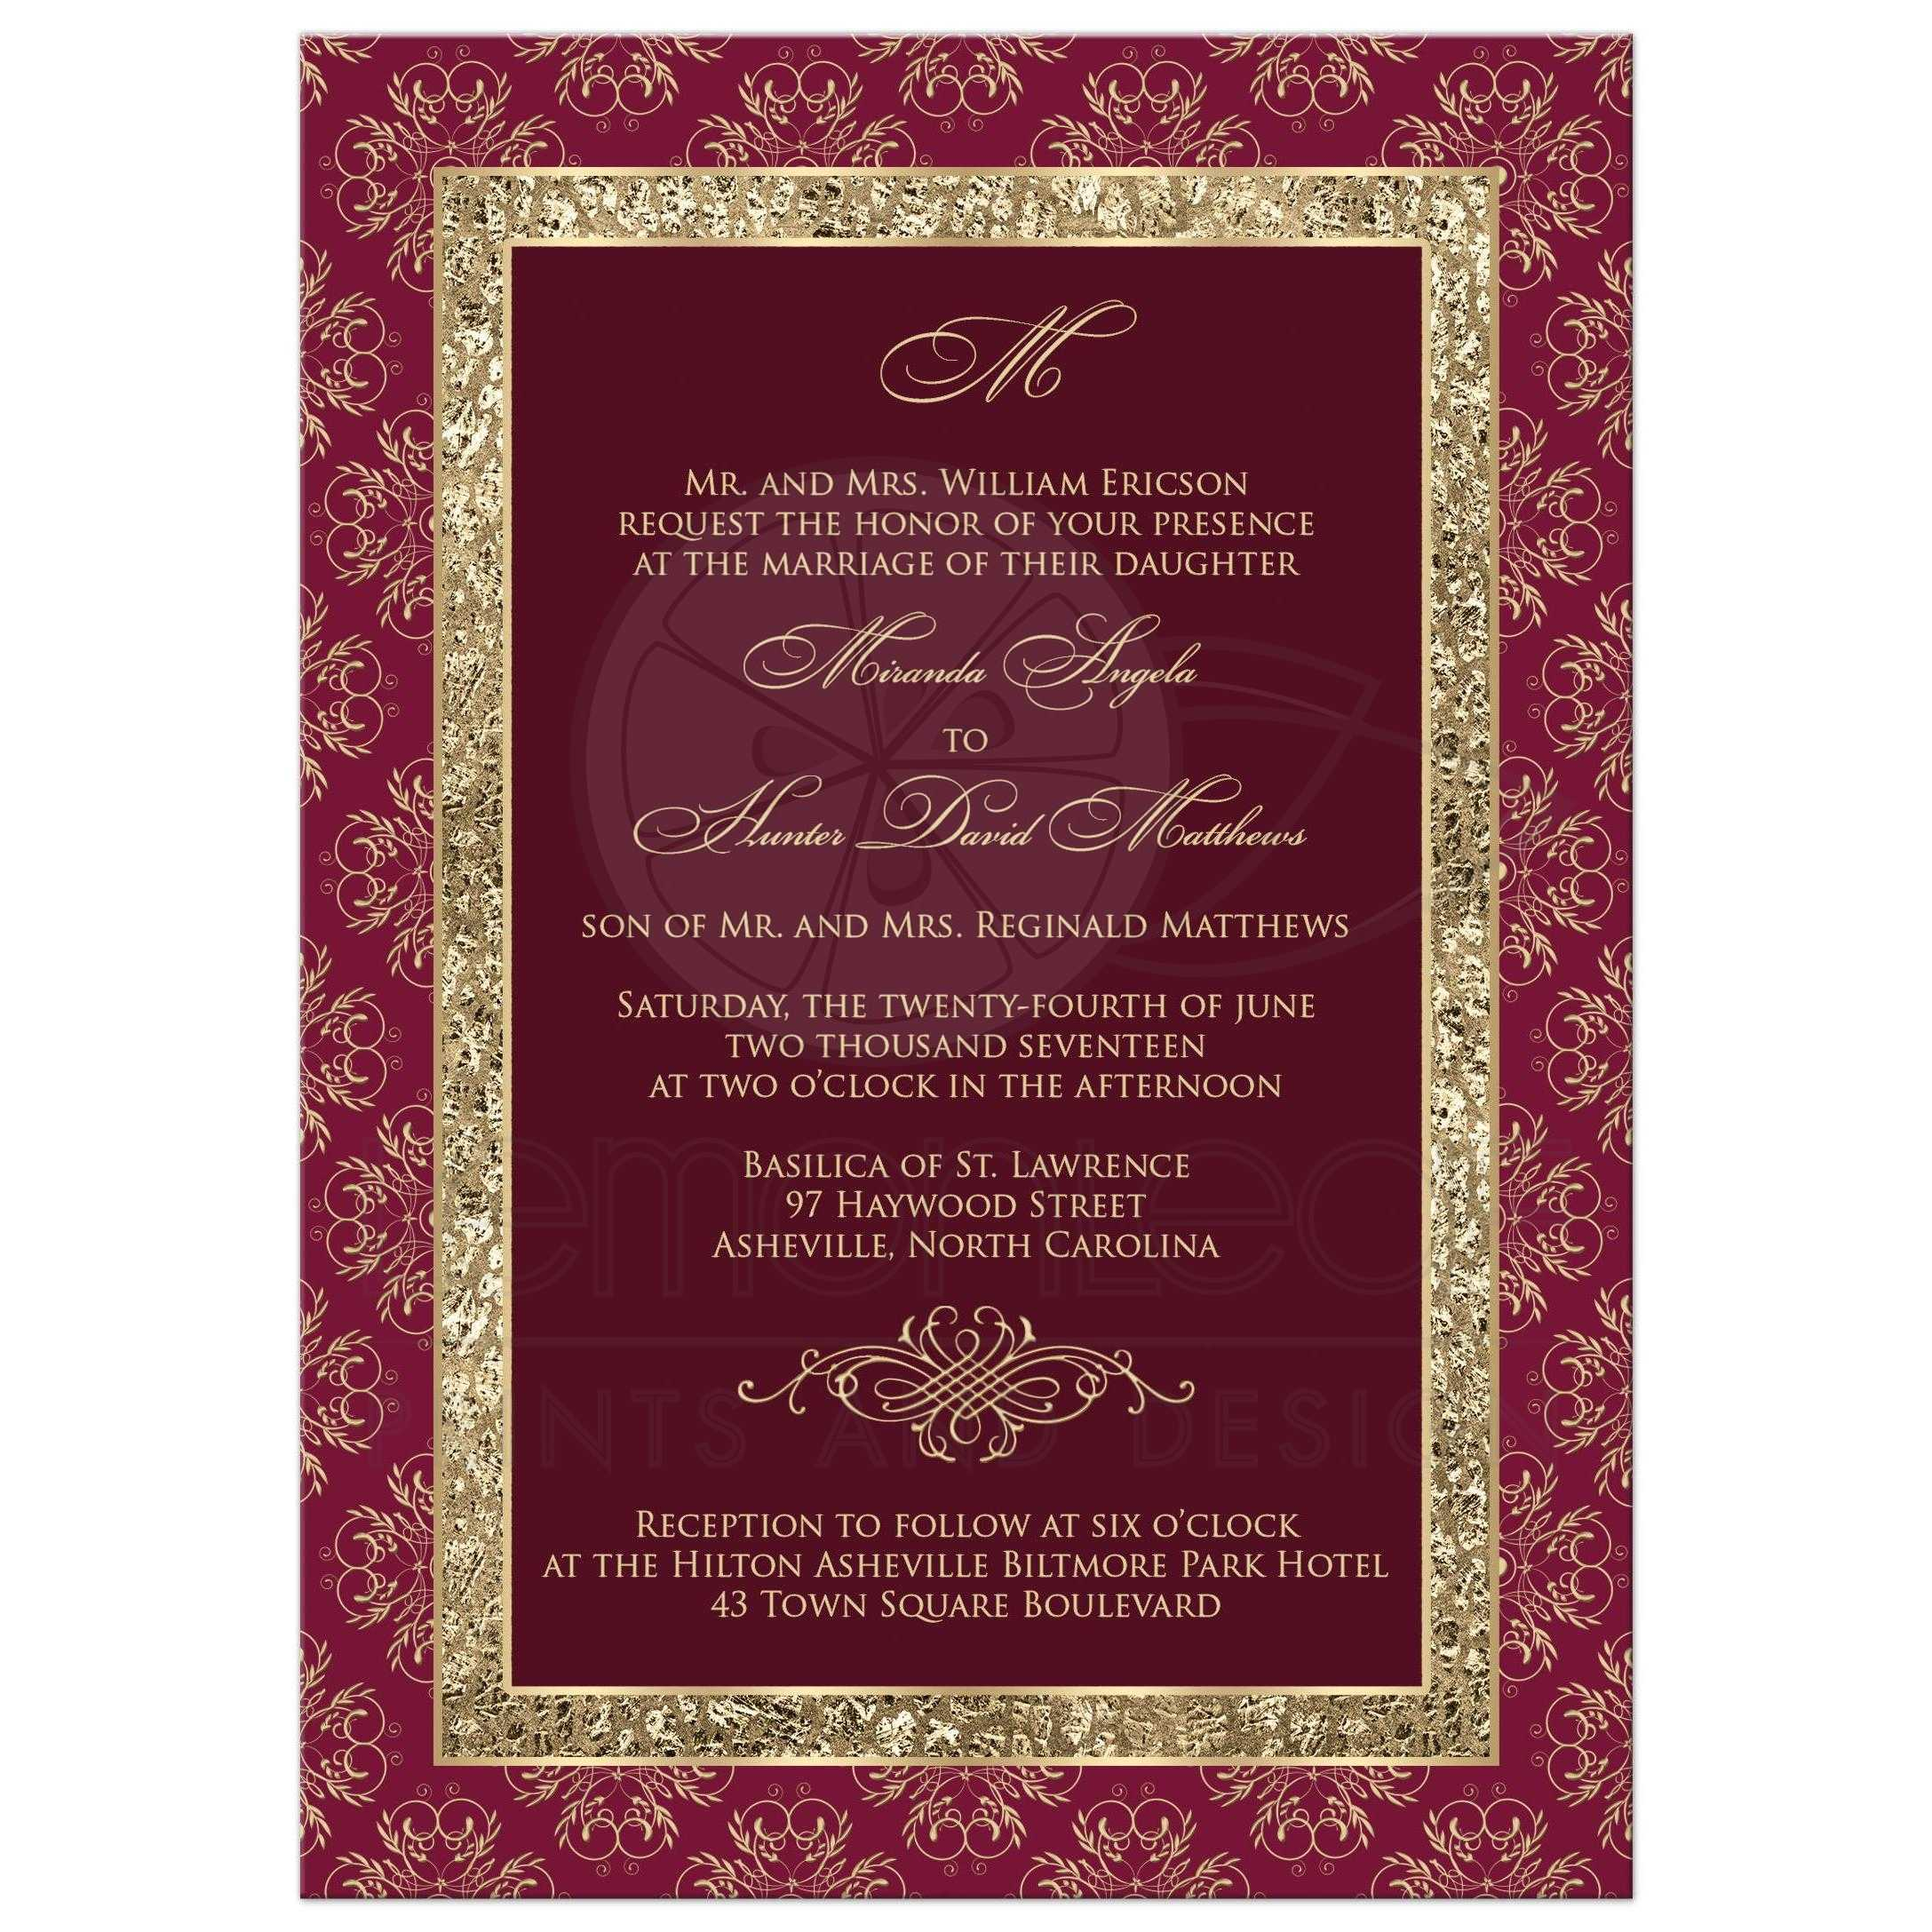 Burgundy Gold Ornate Scrolls Wedding Invitation ...